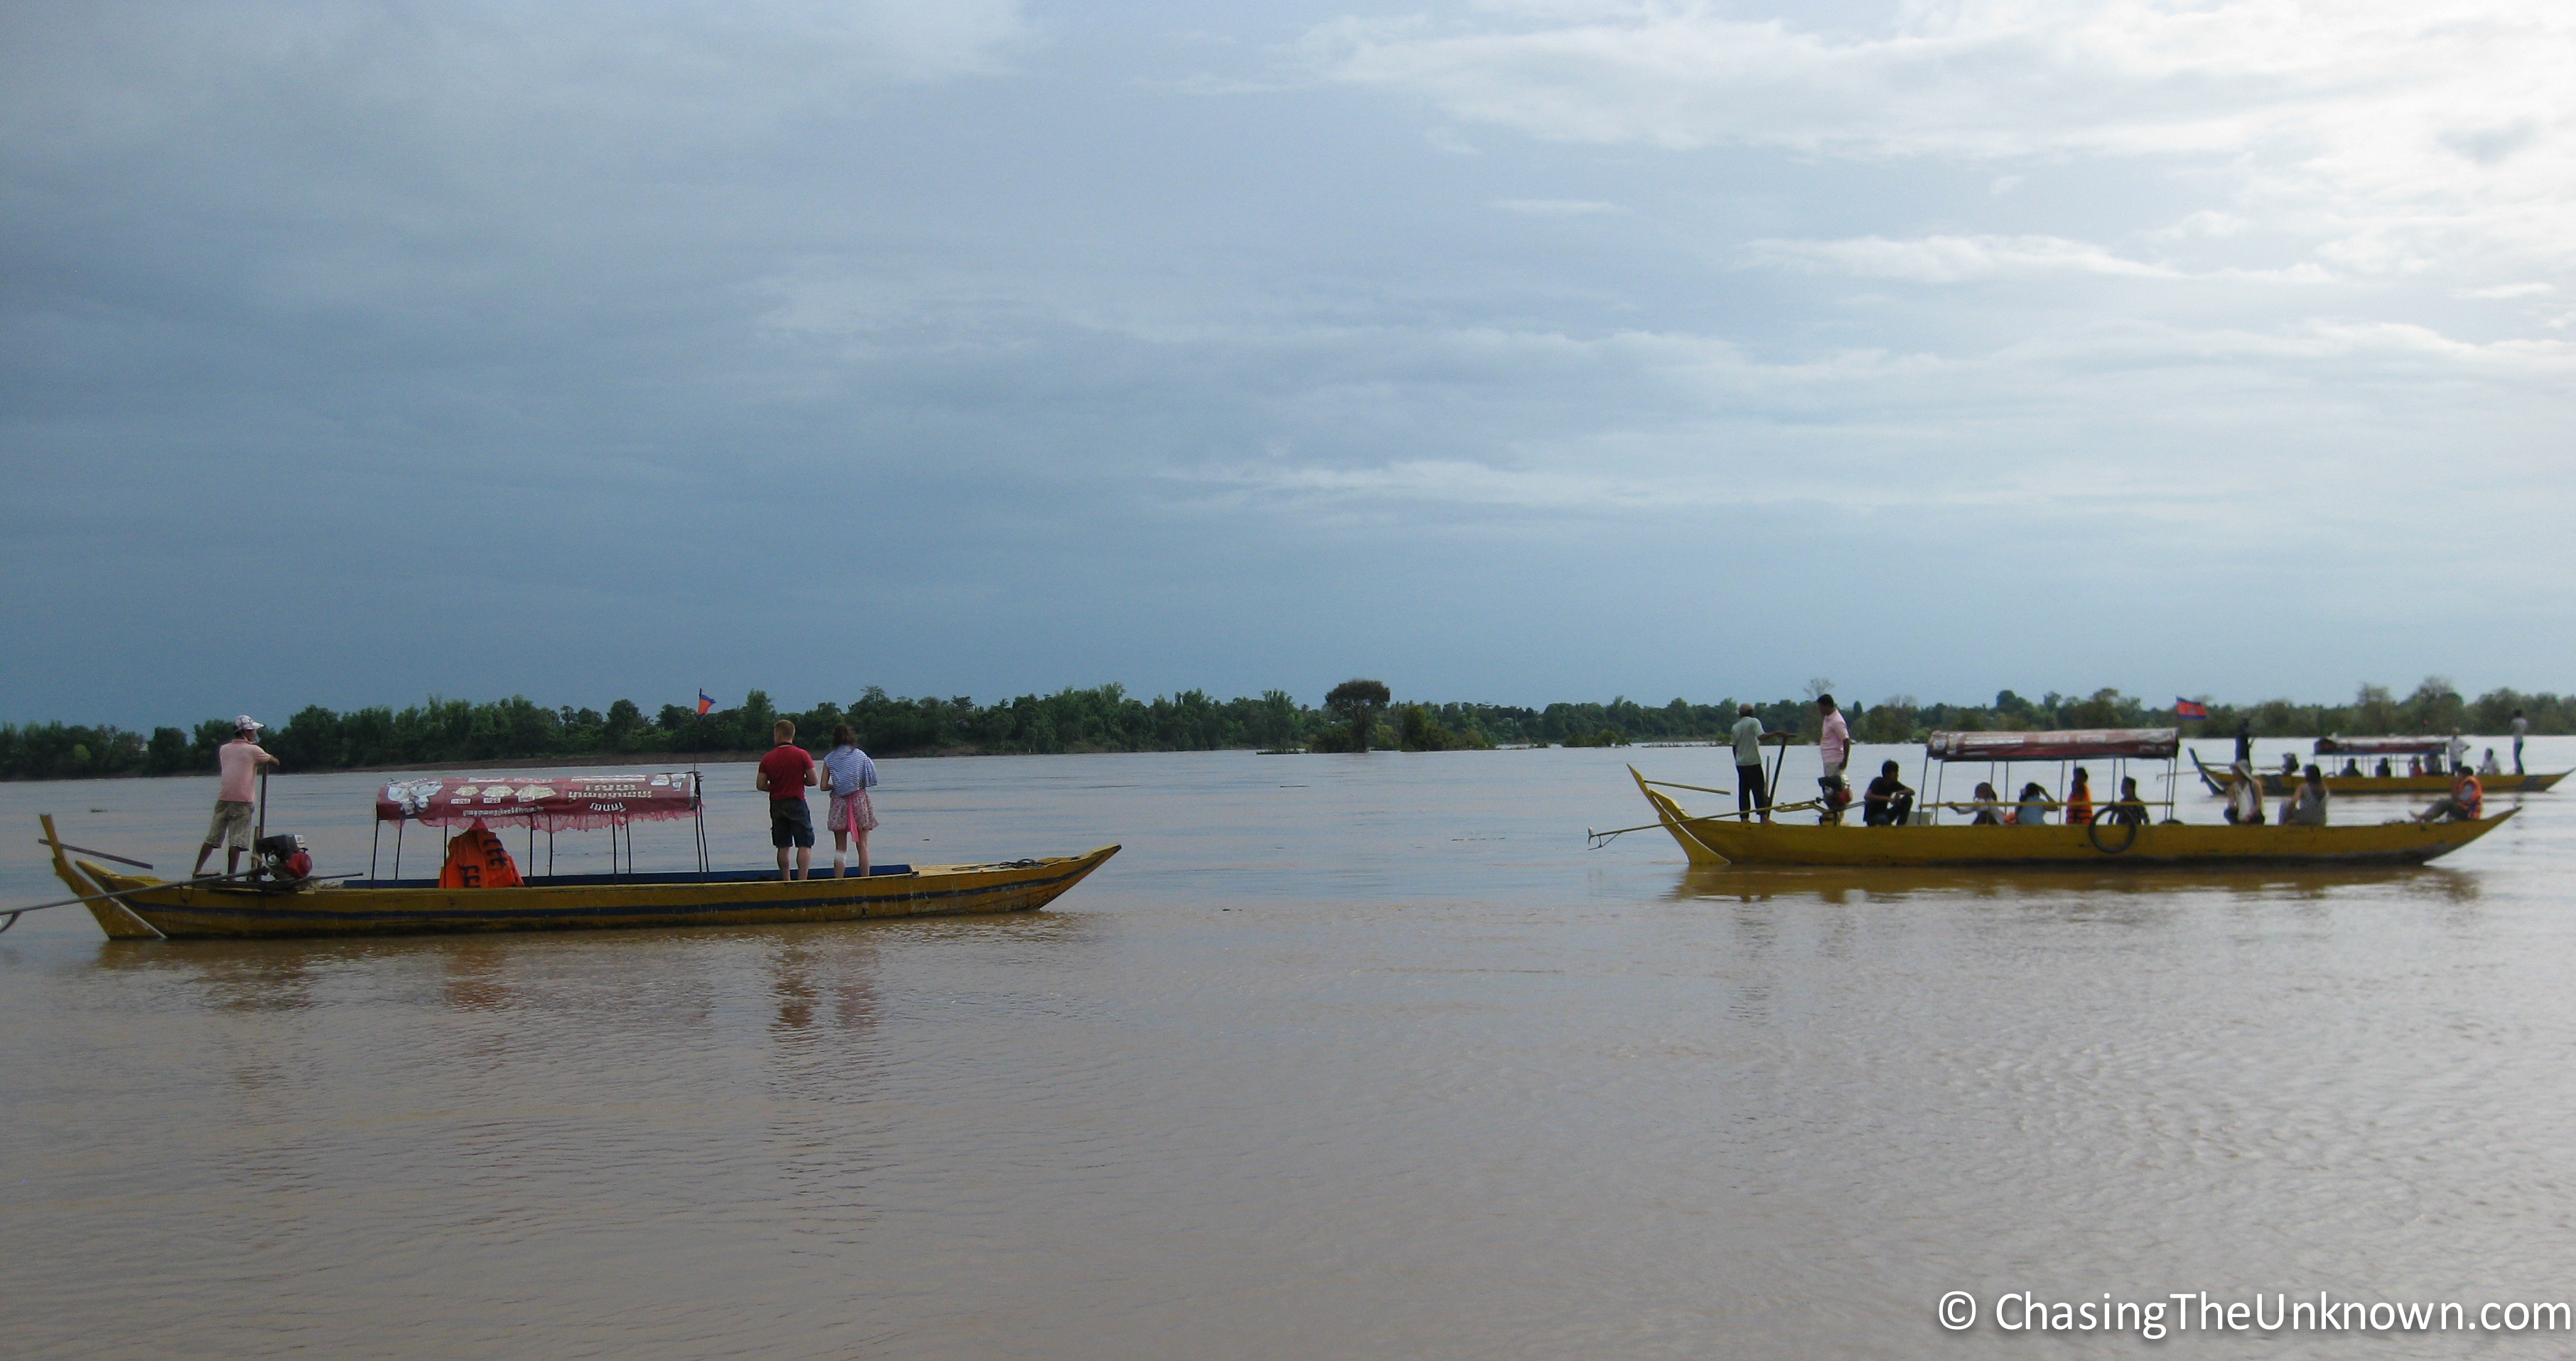 A Moment in Kratie with Irrawaddy Dolphins